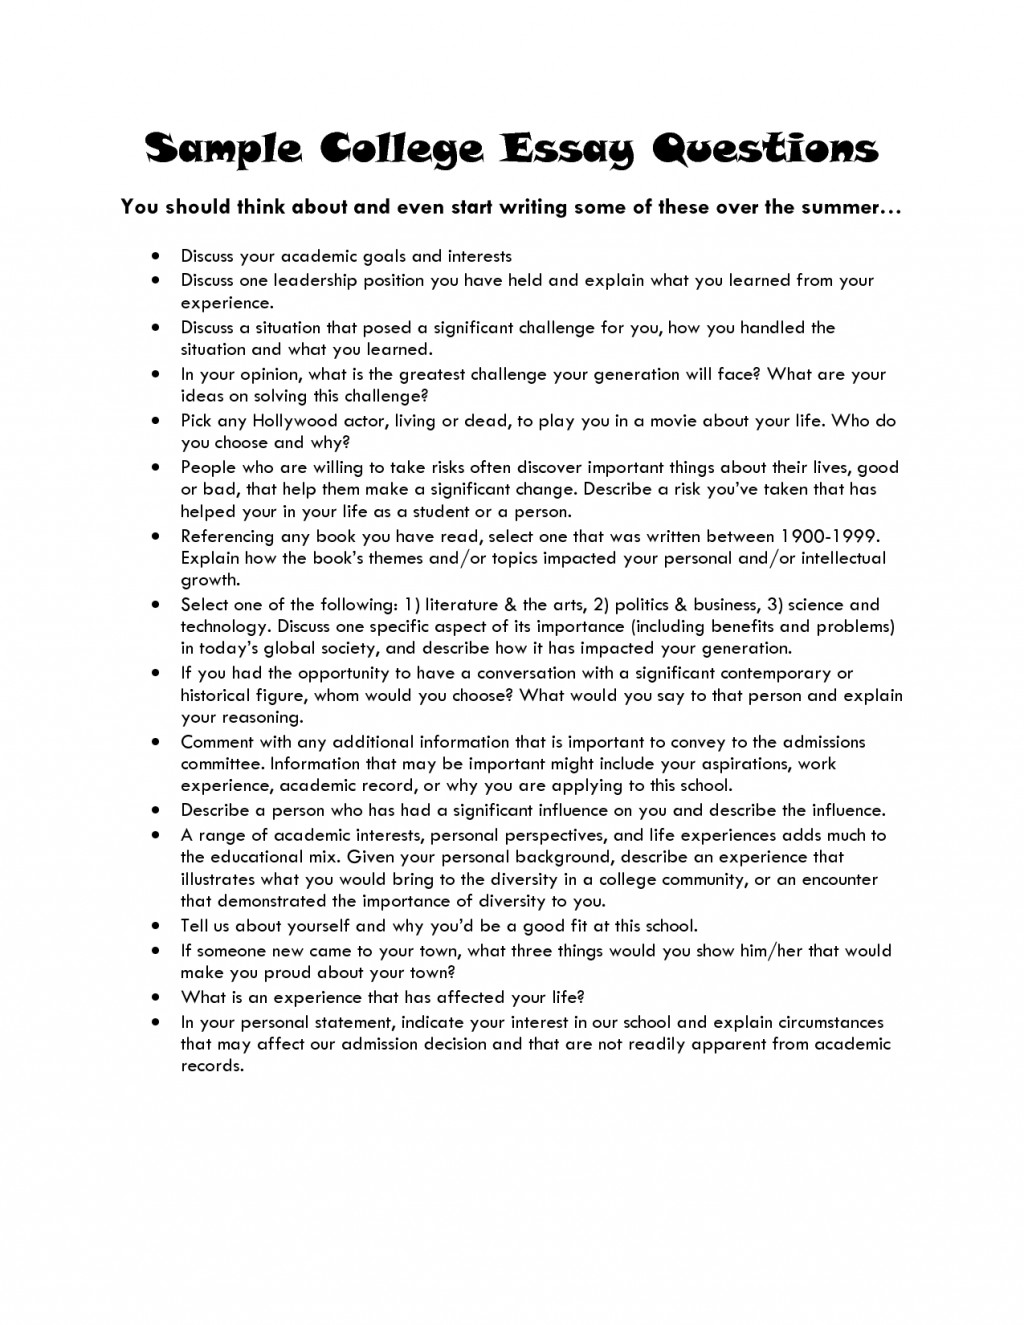 005 College Essay Topics Academic Goals Sample Questions L Top Failure Prompt Examples That Stand Out 2018 Large